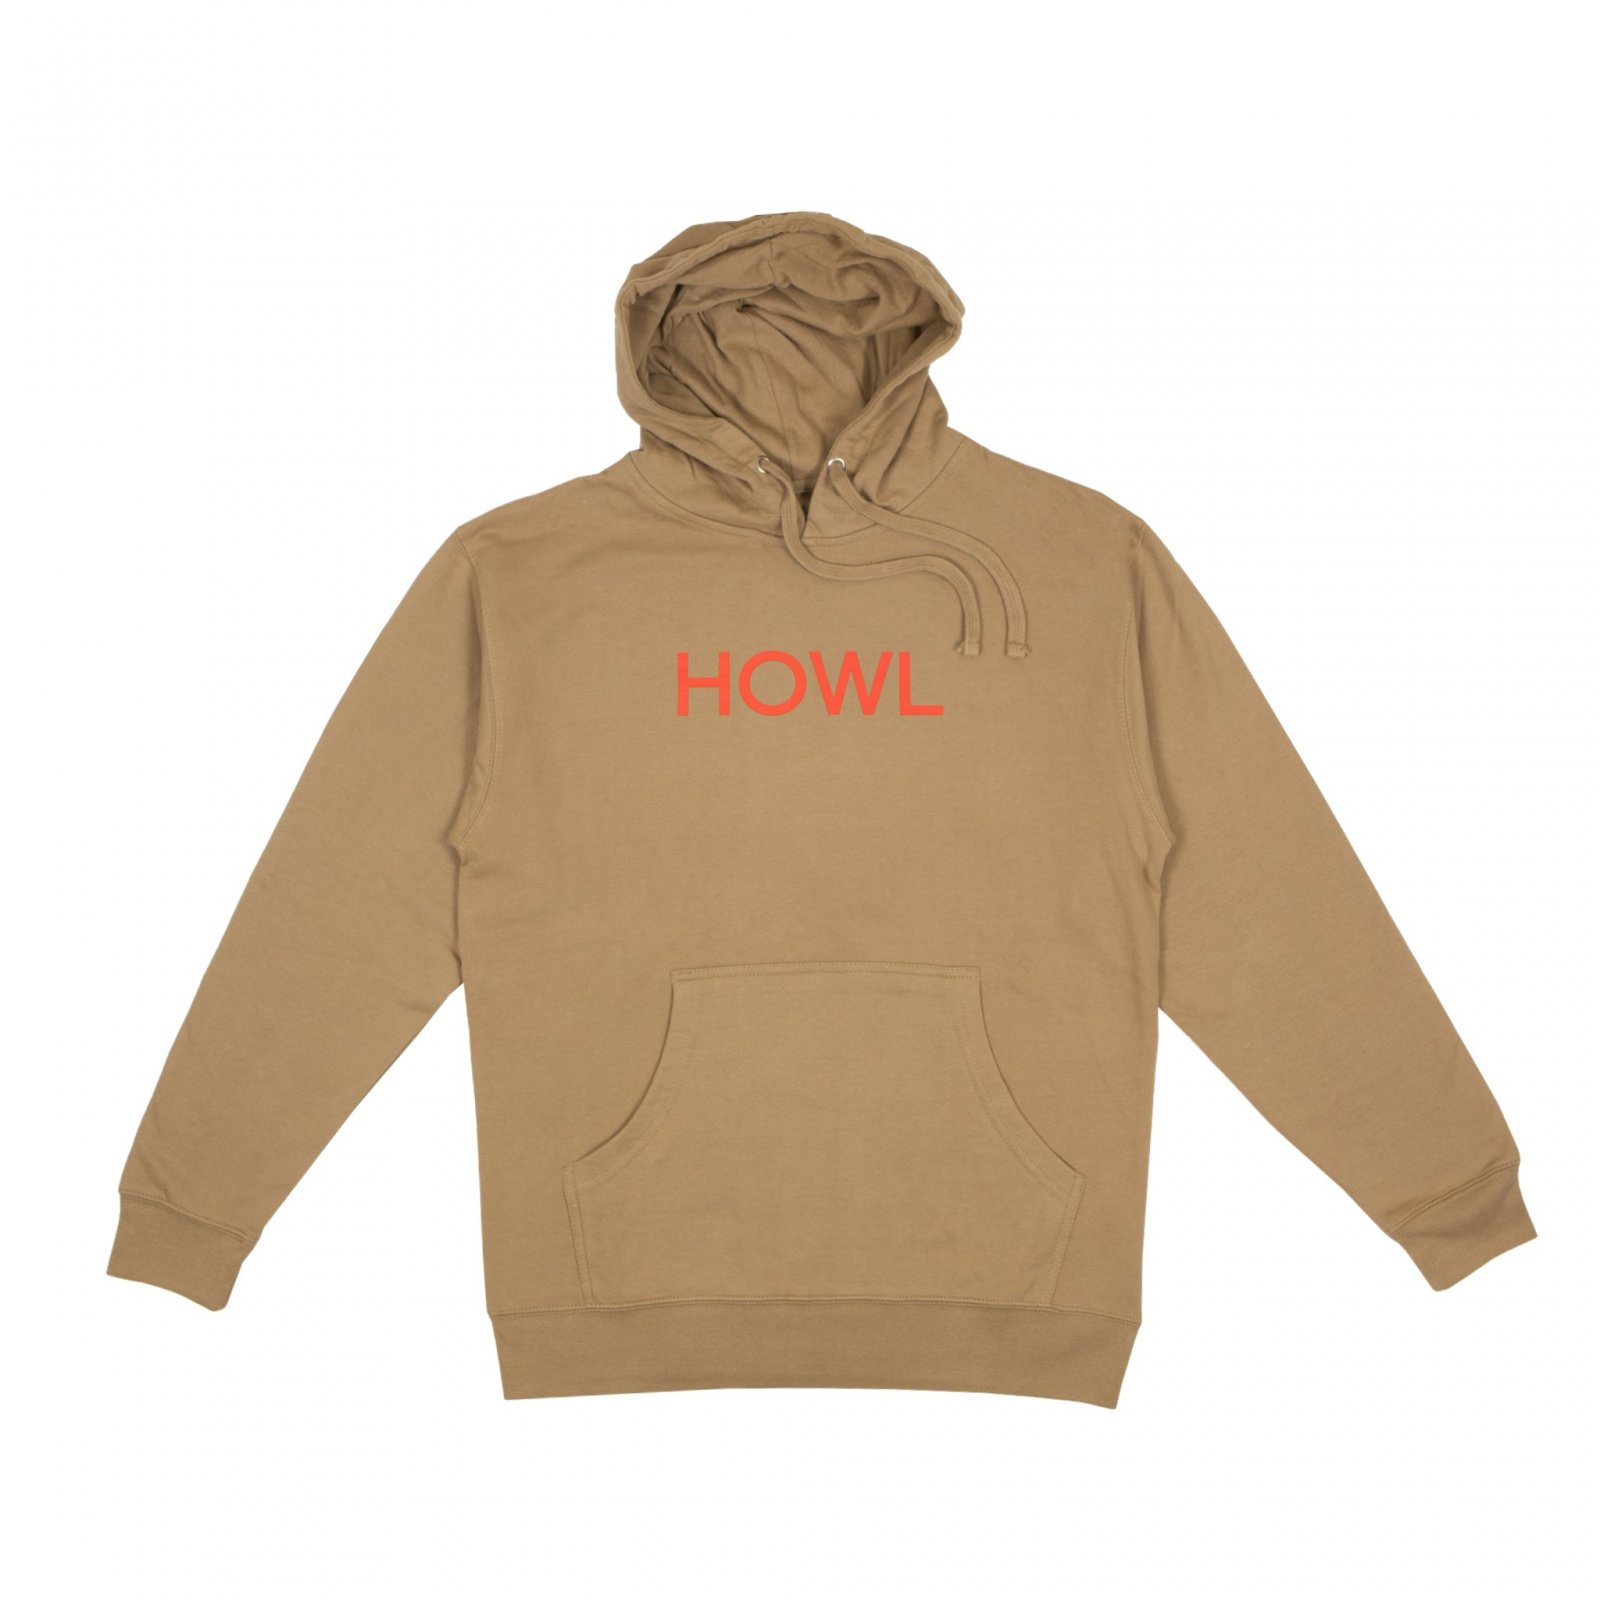 Howl Logo Hoody (Multiple Color Options)